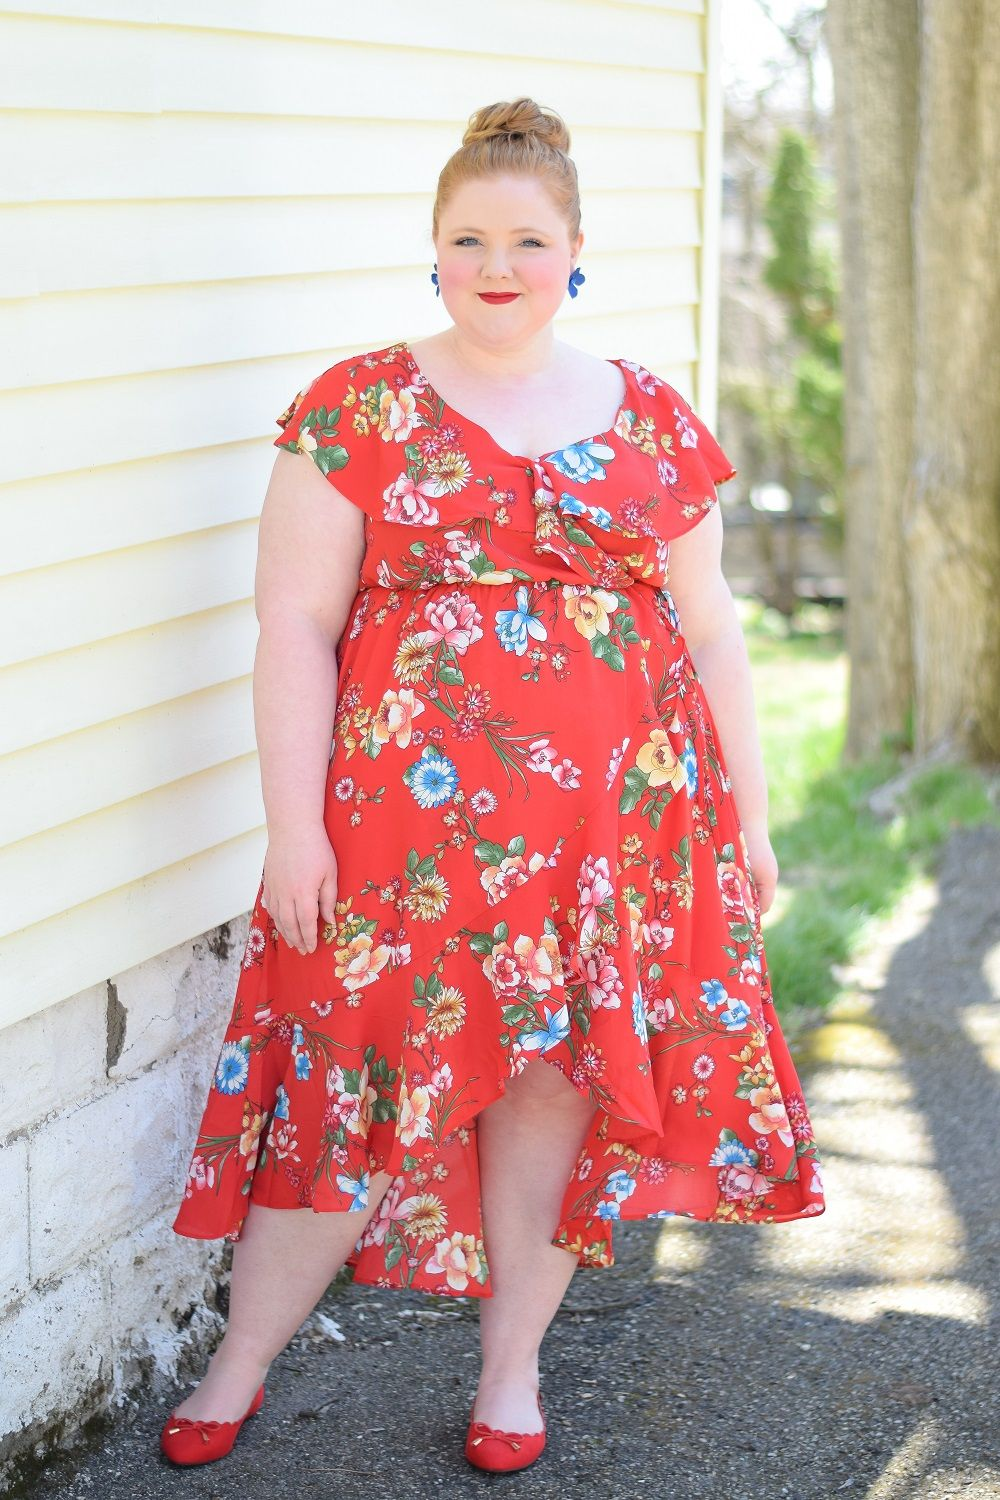 Plus Size Summer Sundresses From Liz Louize Boutique With Wonder And Whimsy Plus Size Fashion Plus Size Outfits Plus Size Sundress [ 1500 x 1000 Pixel ]